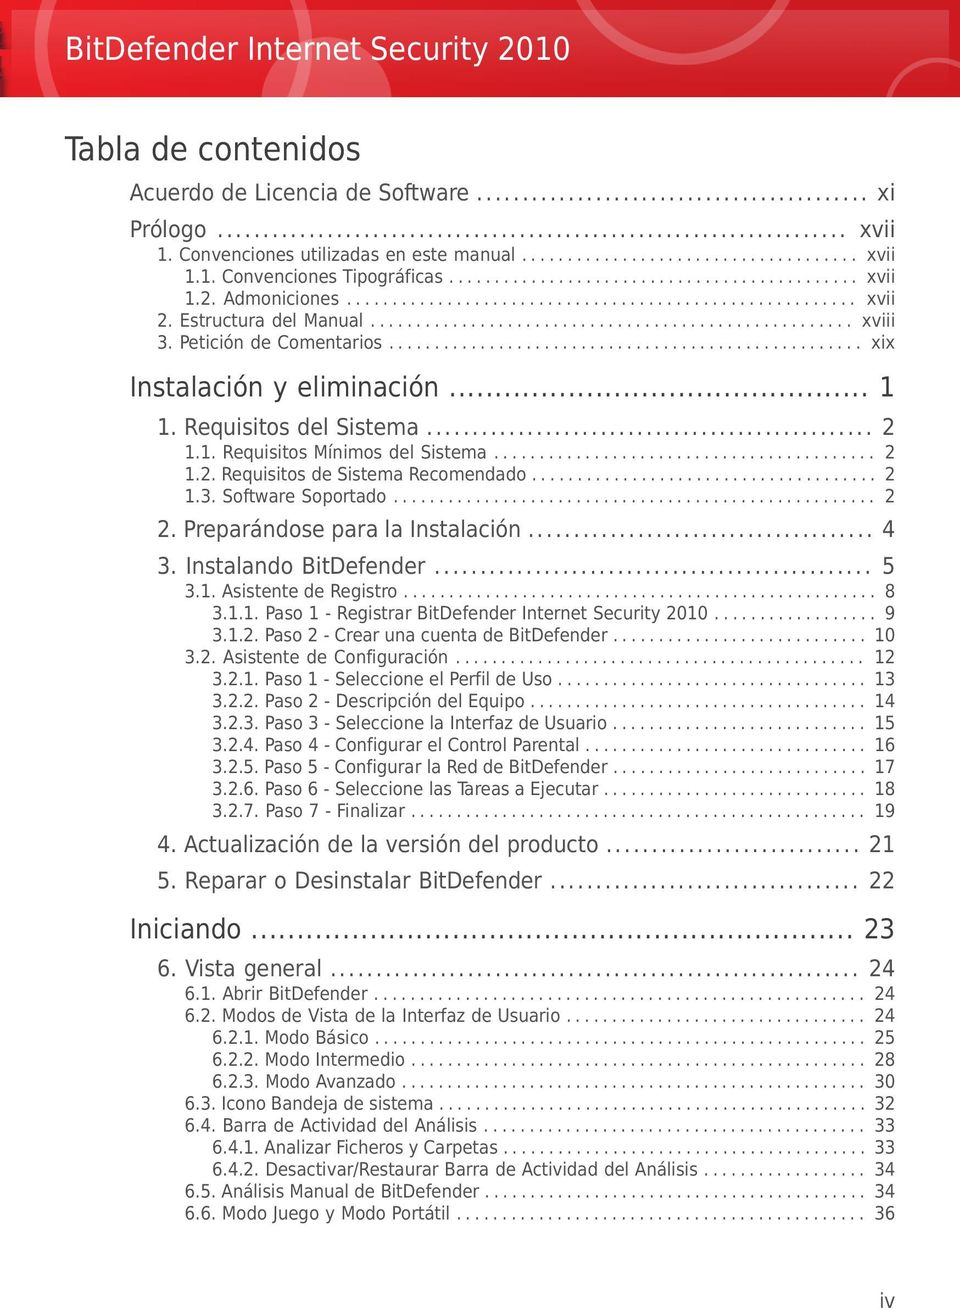 ................................................... xix Instalación y eliminación... 1 1. Requisitos del Sistema... 2 1.1. Requisitos Mínimos del Sistema.......................................... 2 1.2. Requisitos de Sistema Recomendado.